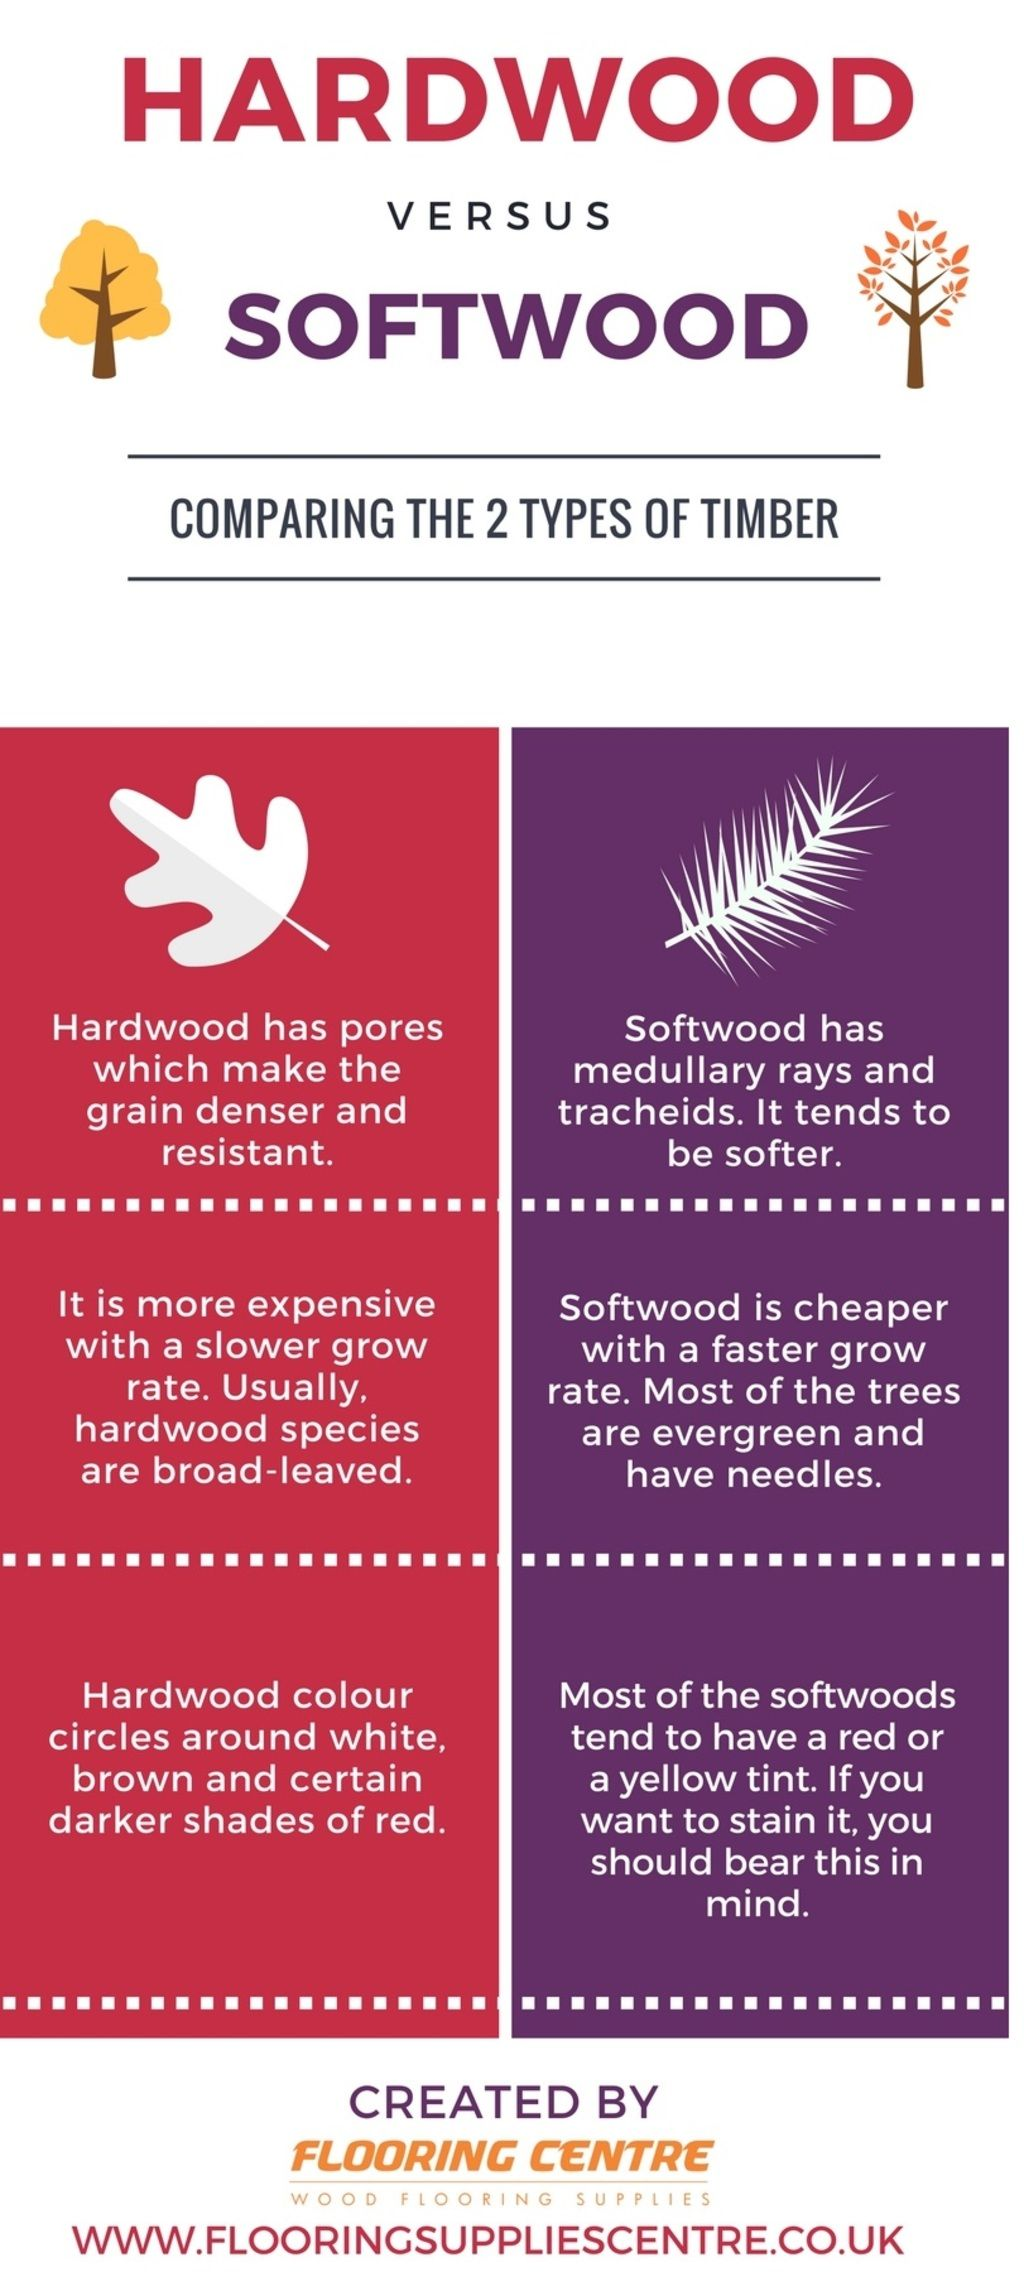 Differences Between Softwood And Hardwood Trees Wood